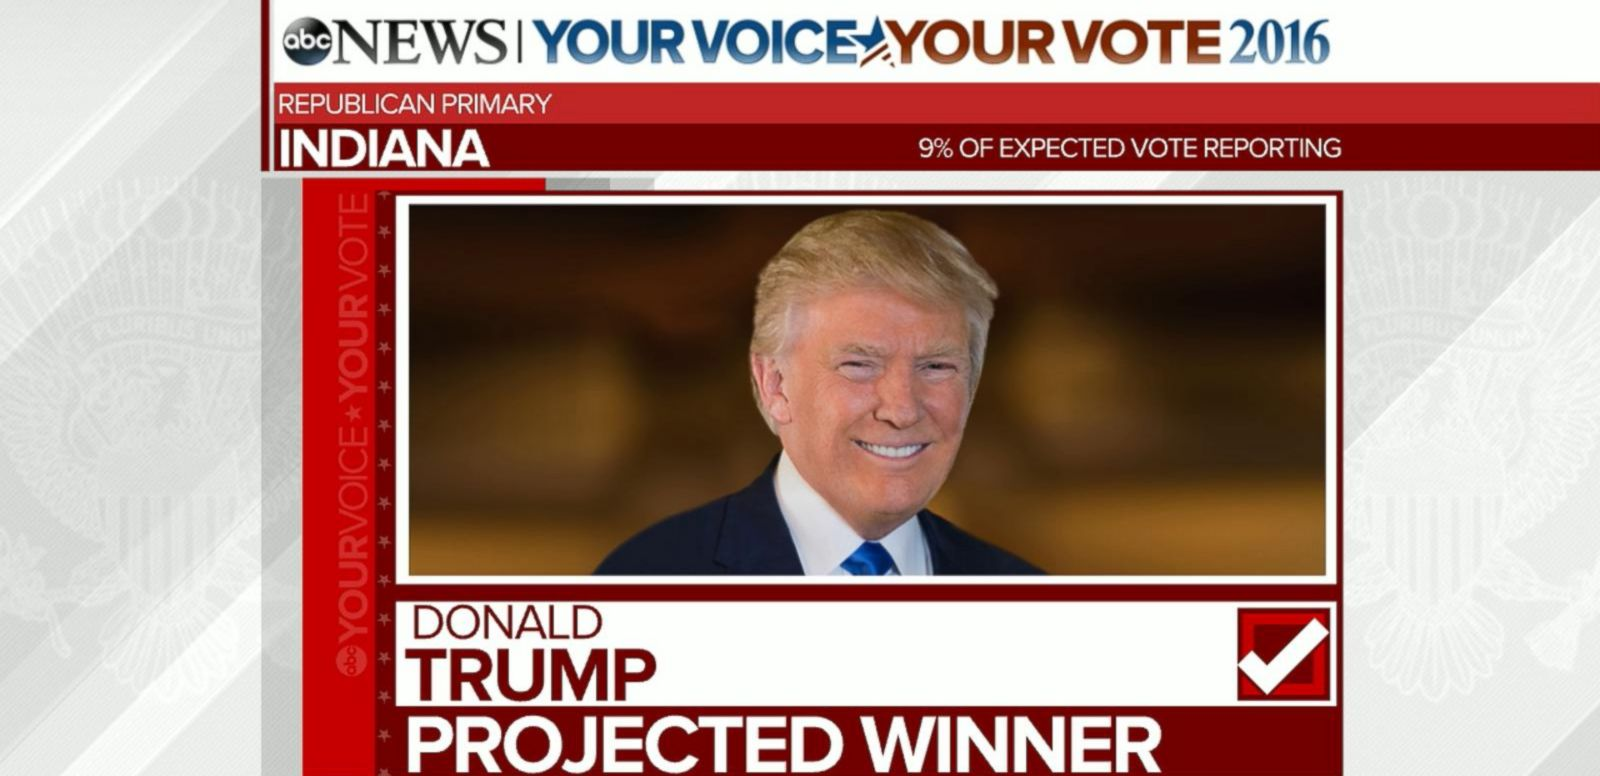 VIDEO: Donald Trump Projected to Win Indiana Primary